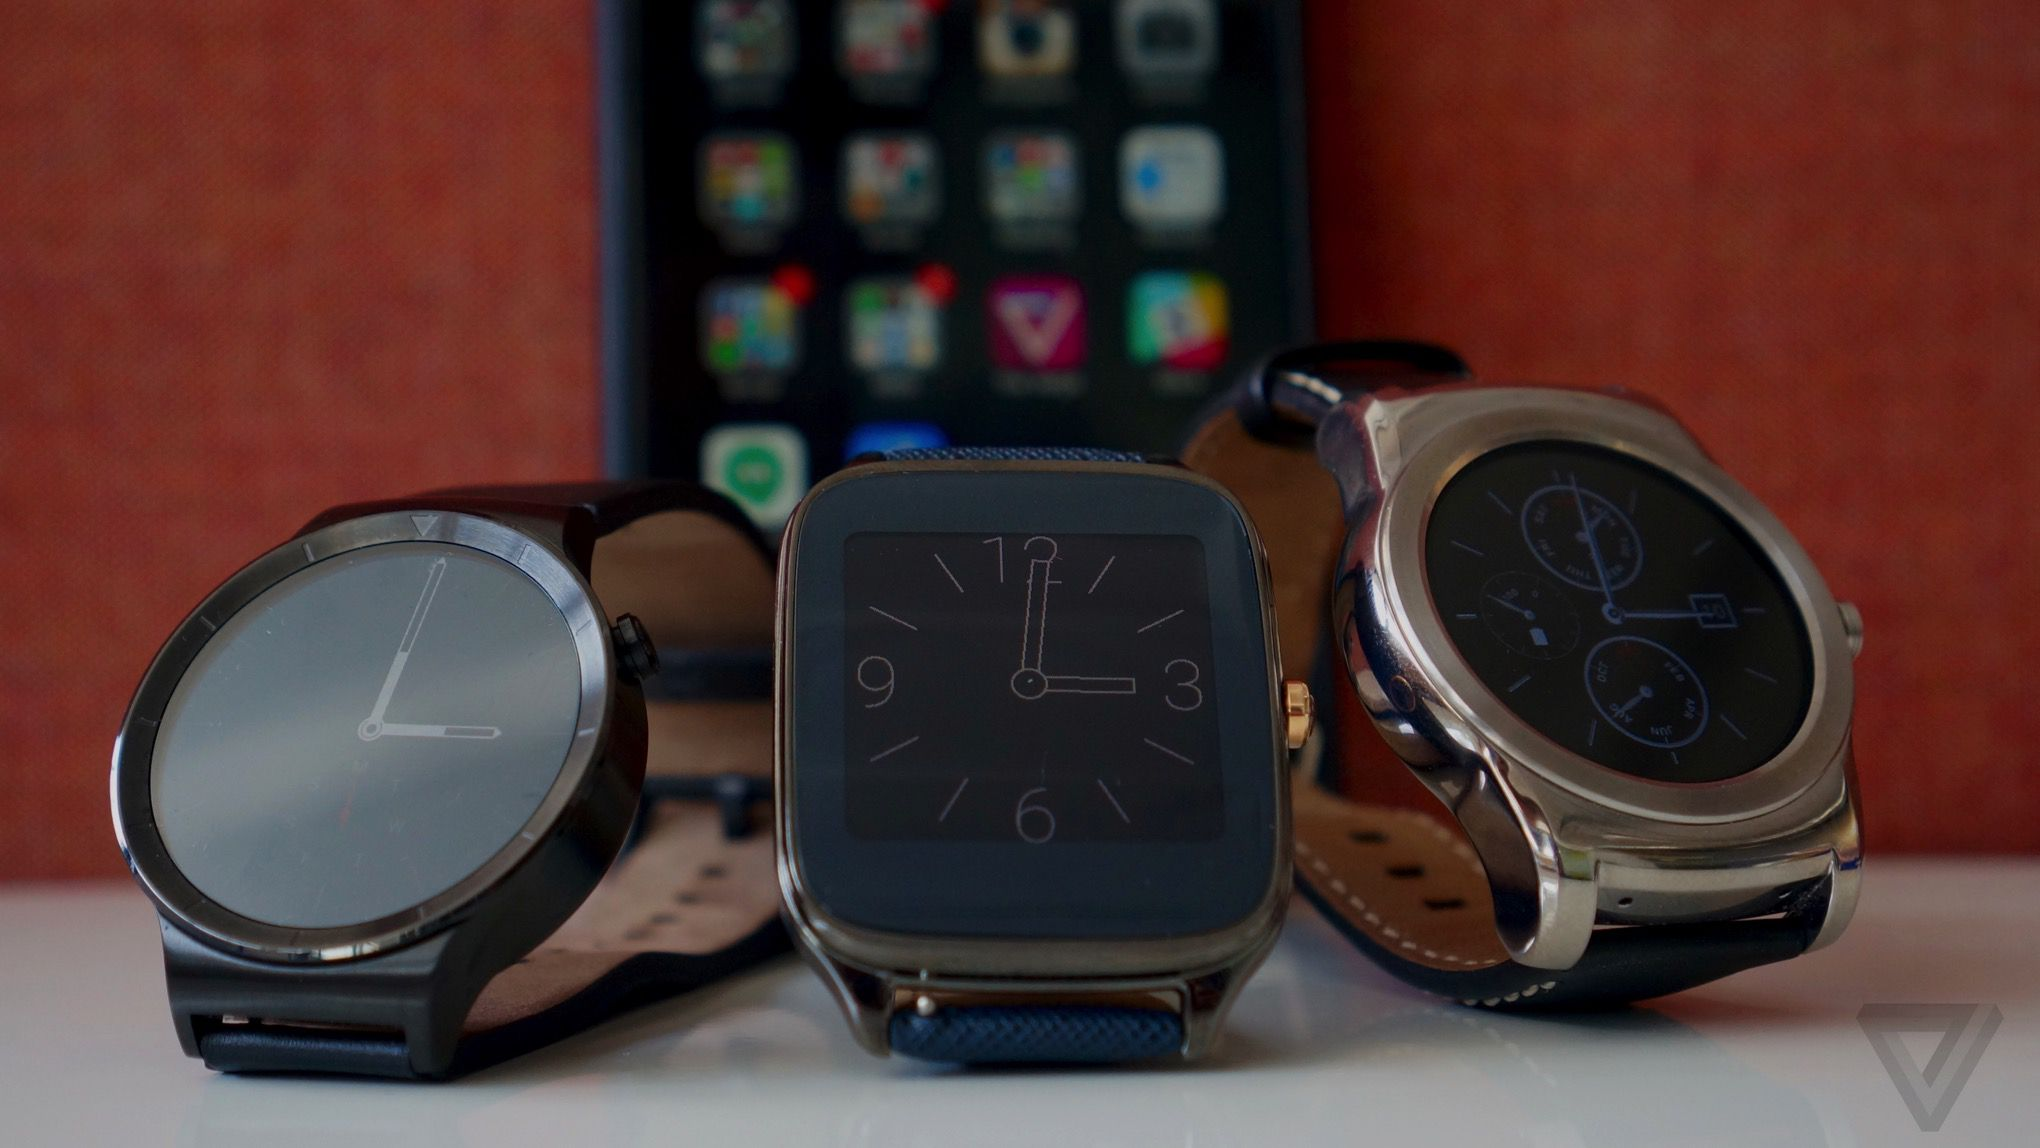 c4c4f9b53966 Android Wear smartwatches come to the iPhone | The Verge